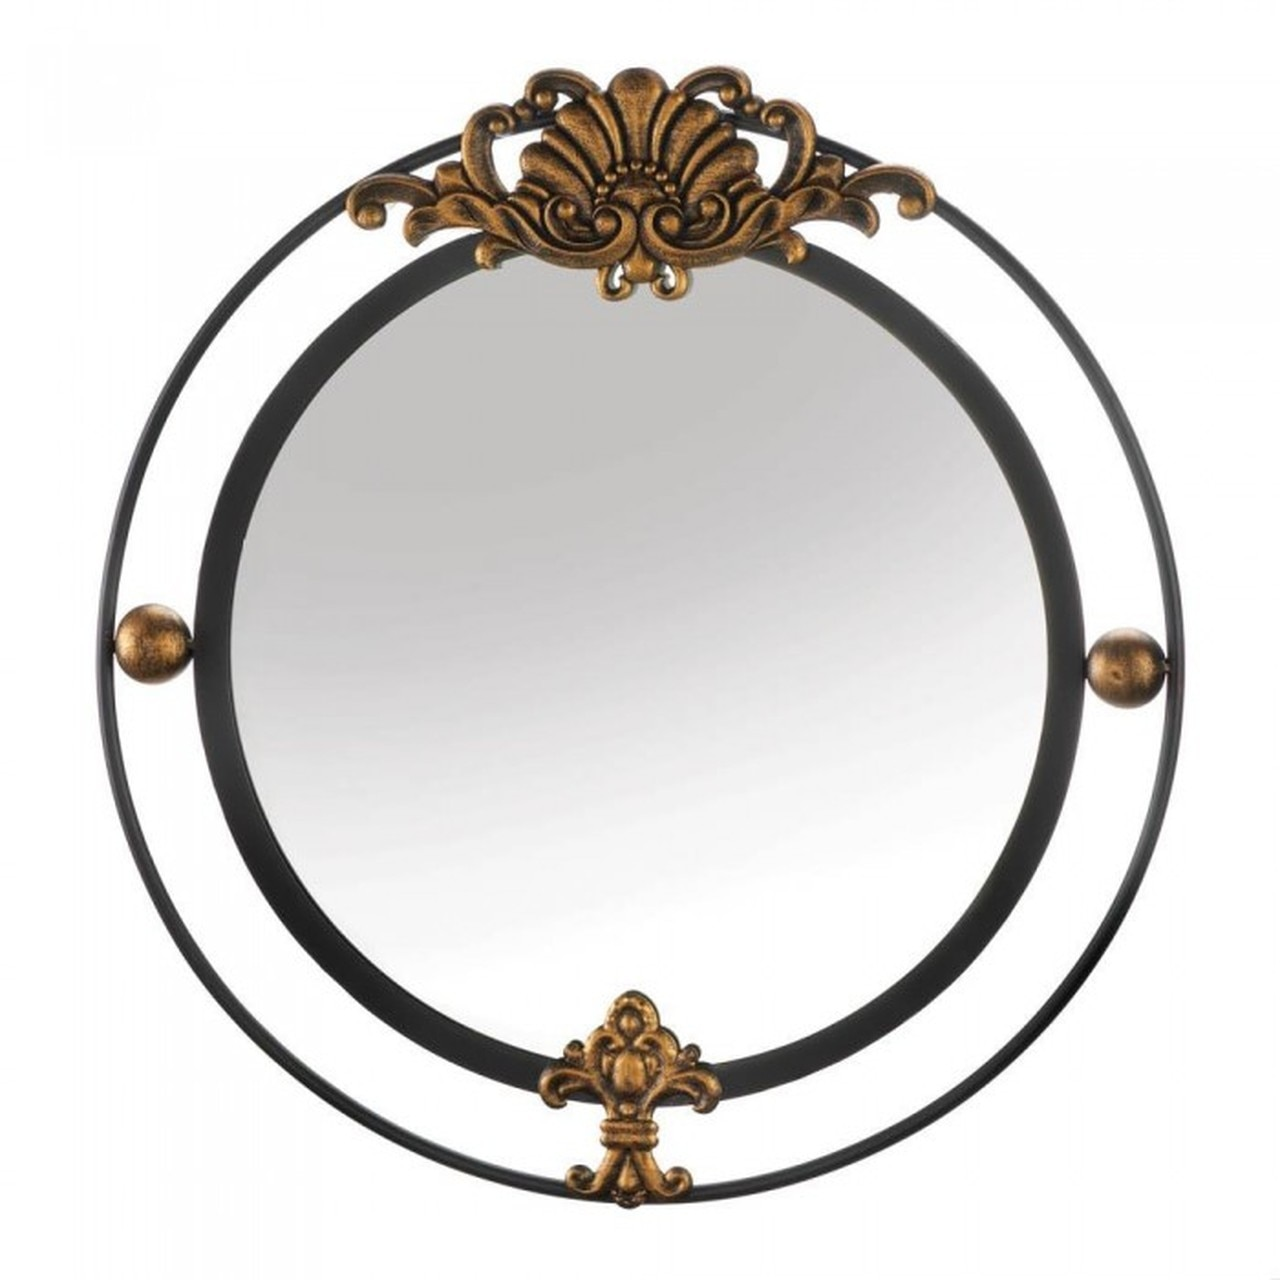 Details About Stately Round Metal Hanging Wall Mirror Home Decor Accent Bathroom Vanity